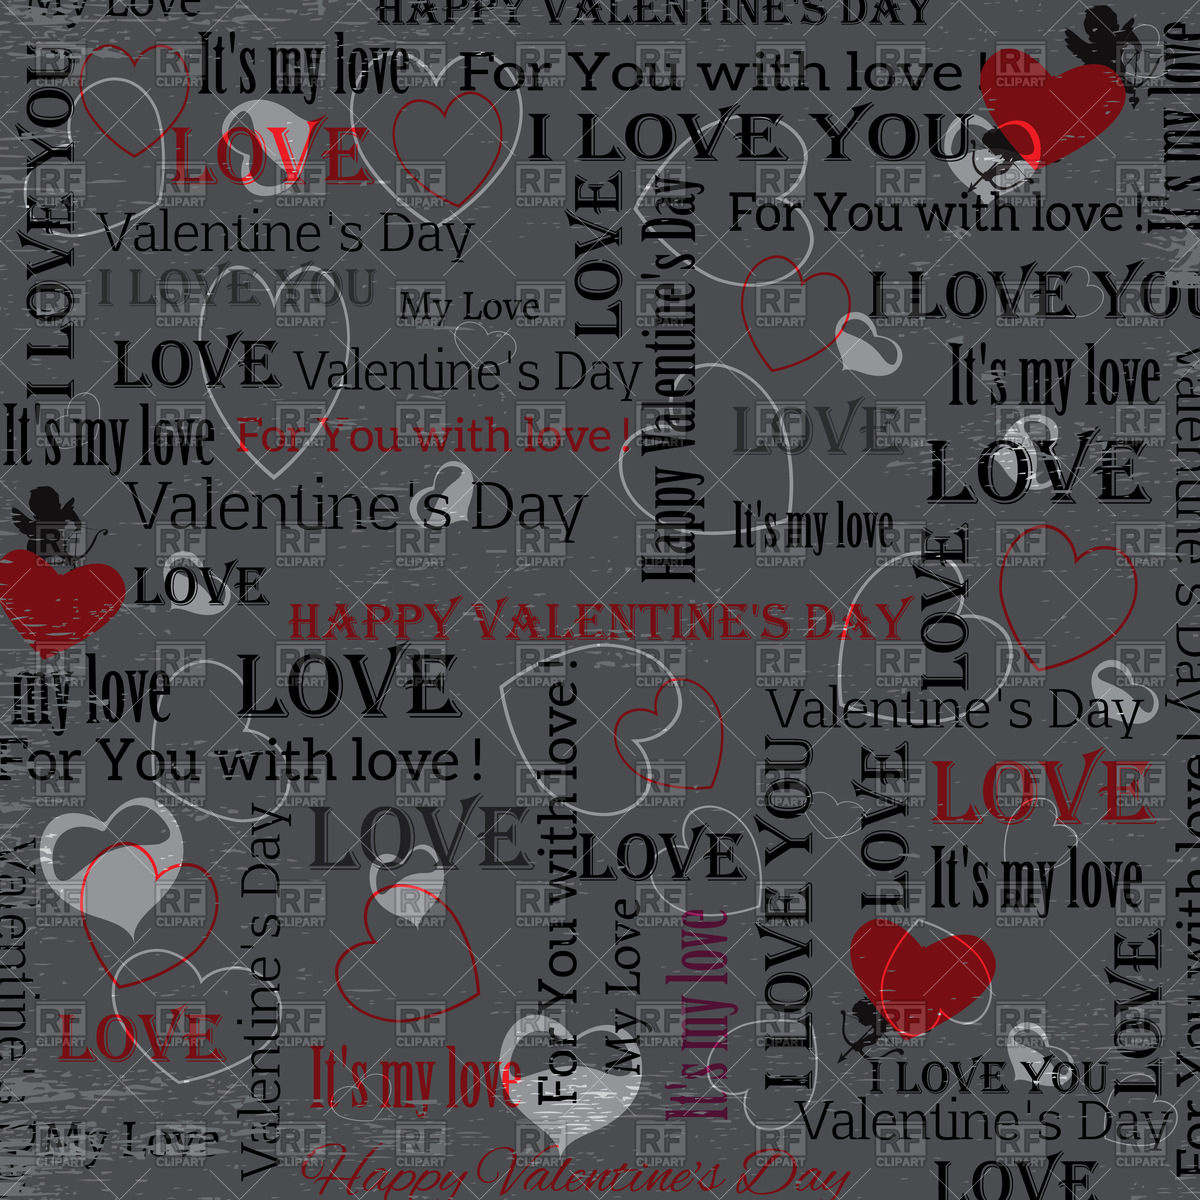 JmJmo valentines day wallpaper with hearts and text in